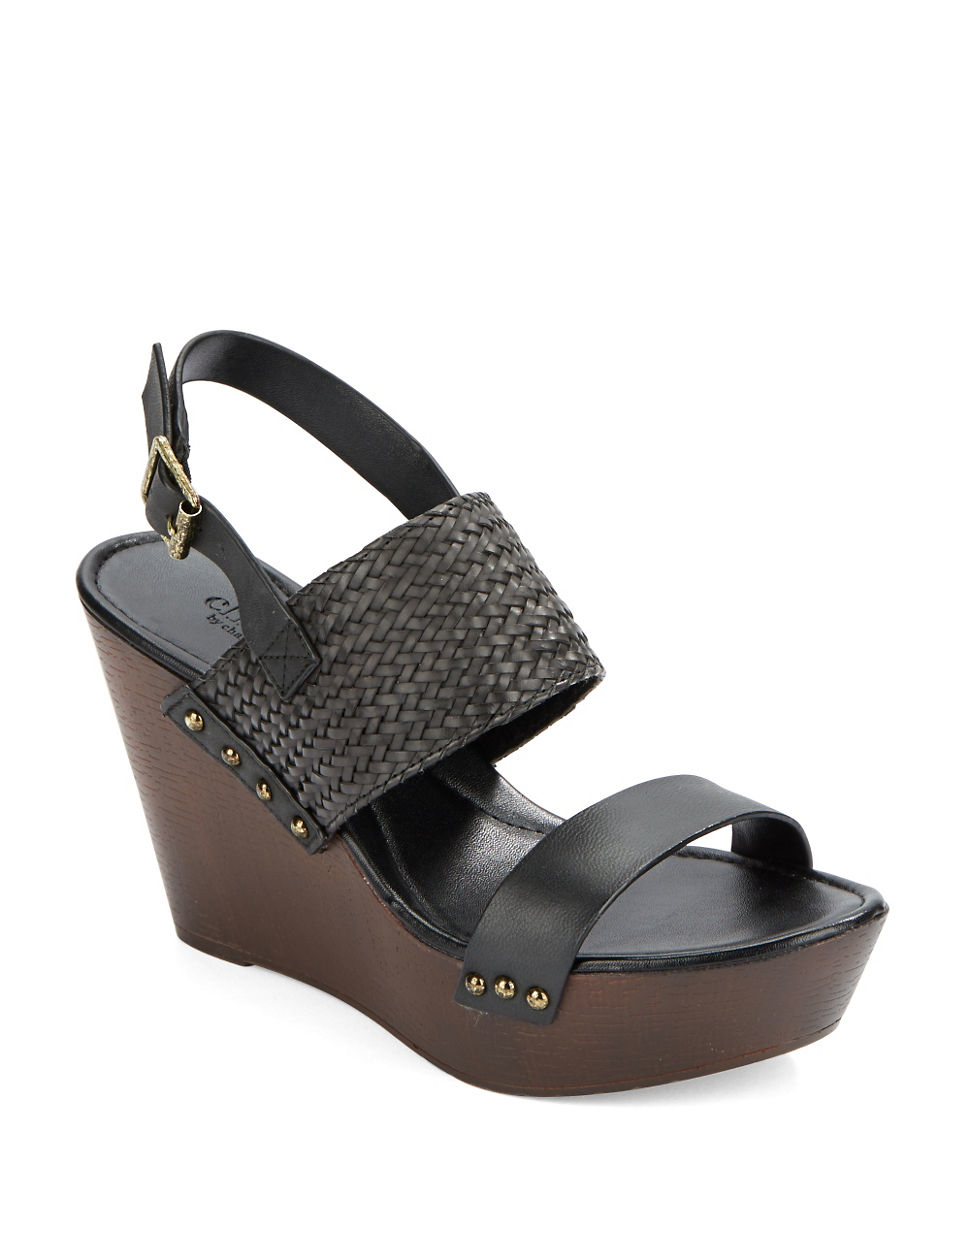 1d114dba27b Lyst - Charles By Charles David Isola Leather Platform Wedges in Black